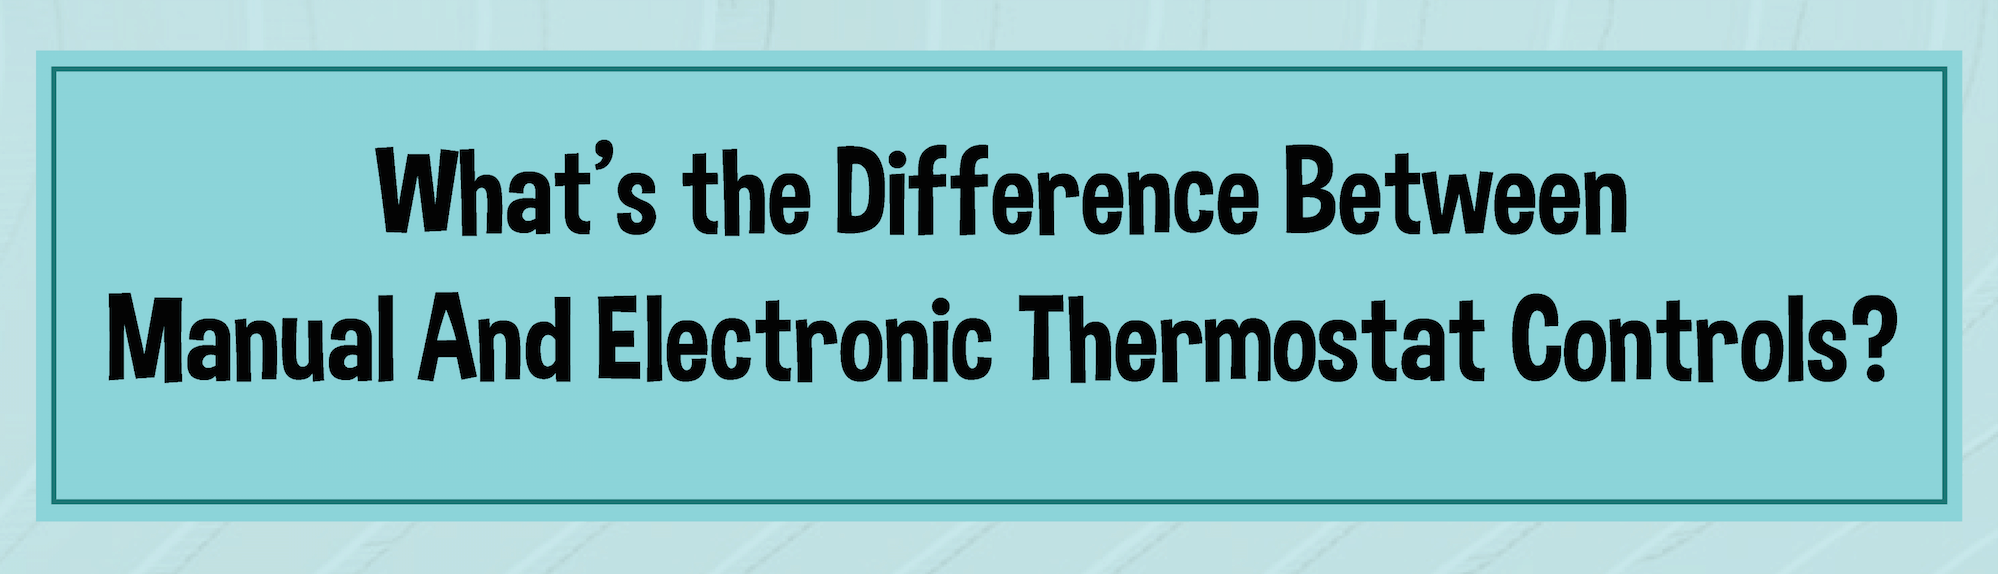 Manual Versus Electronic Thermostat